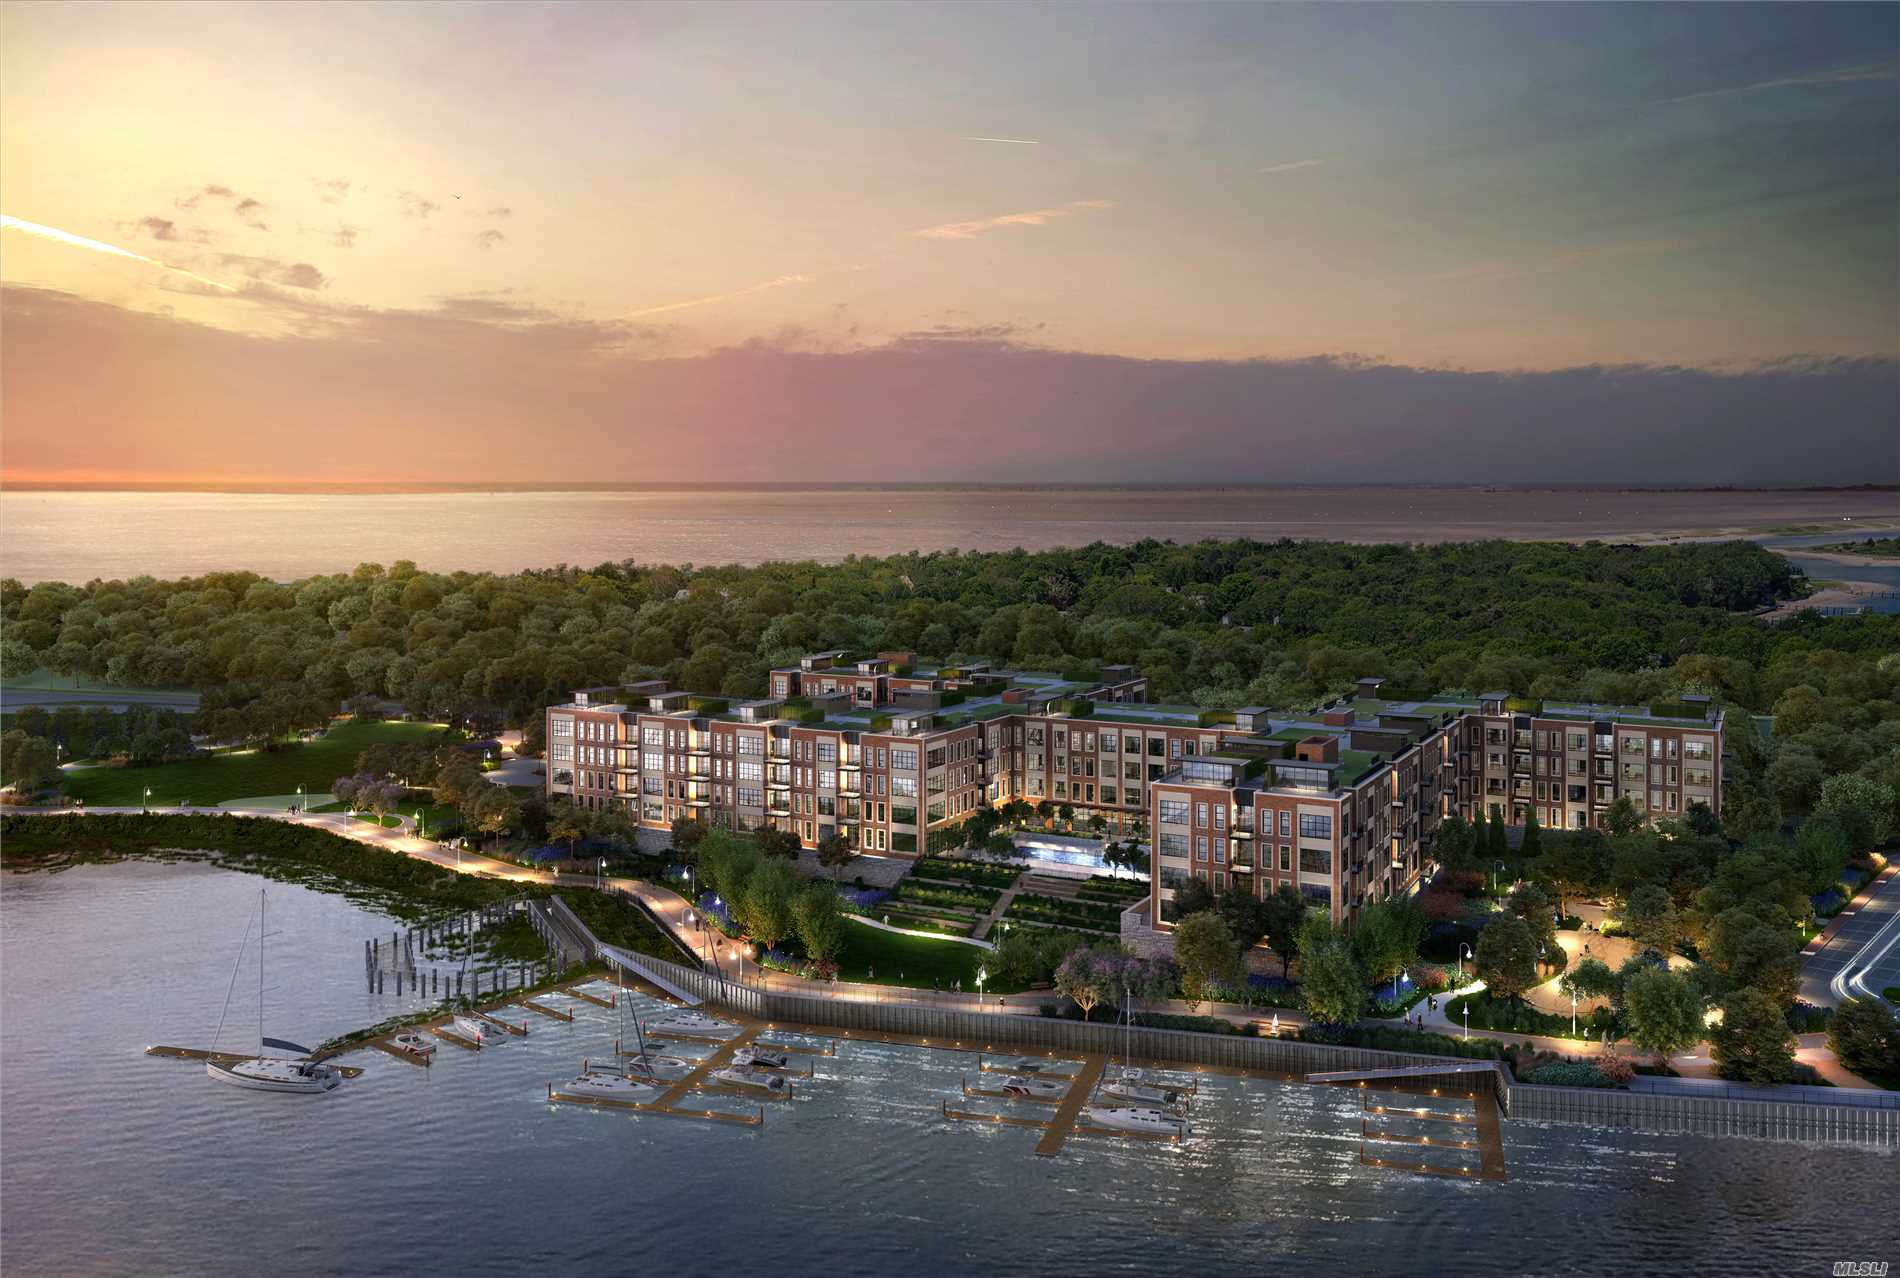 Property for sale at 100 Garvies Point Road # 1341, Glen Cove NY 11542, Glen Cove,  New York 11542